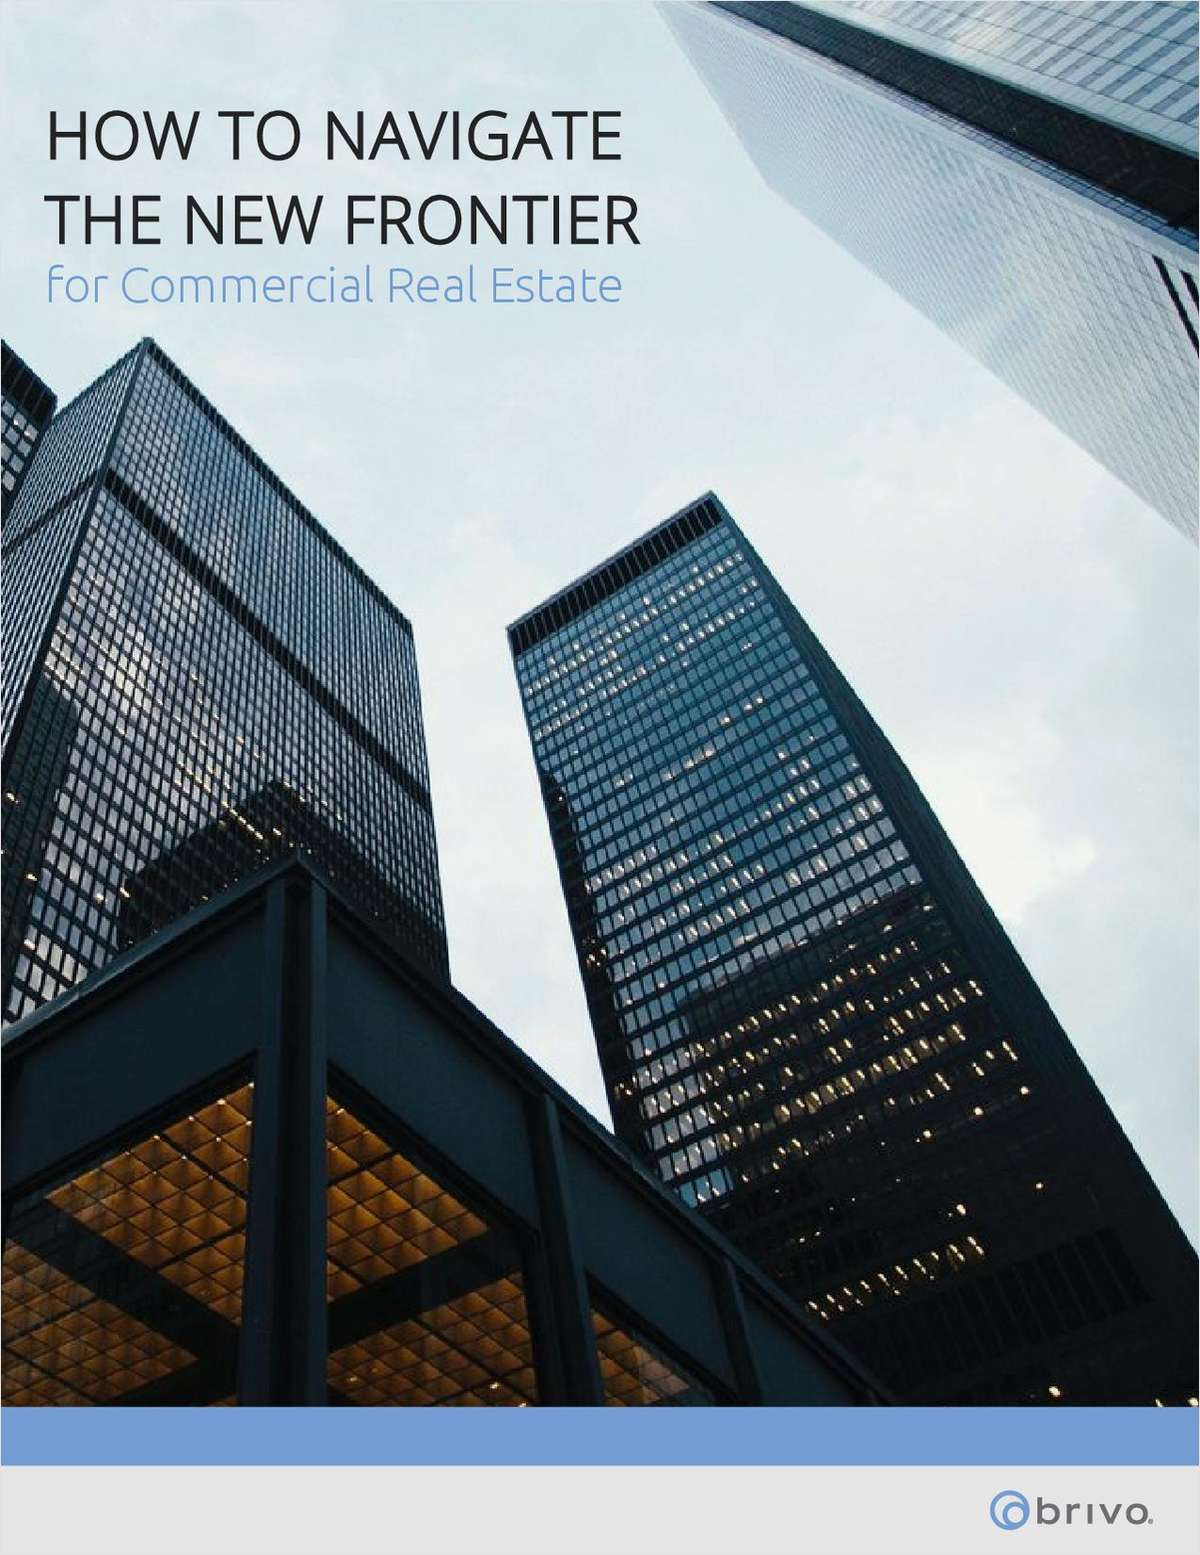 How to Navigate the New Frontier for Commercial Real Estate